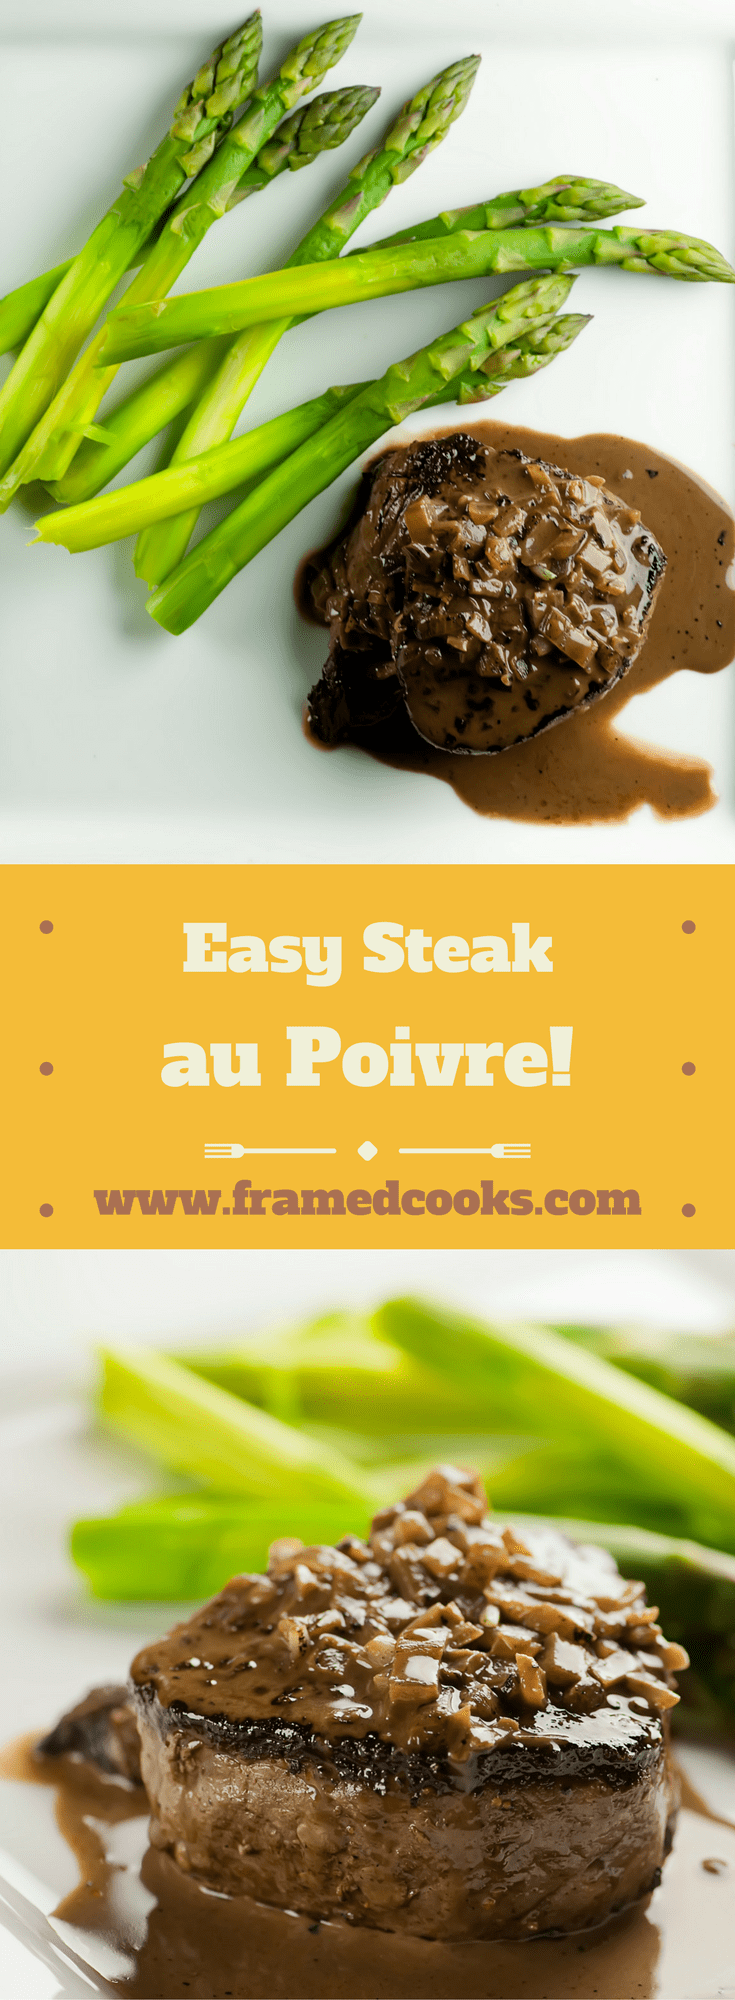 This recipe for easy steak au poivre - otherwise known as steak with pepper - has a creamy, boozy sauce that will have them wanting seconds!